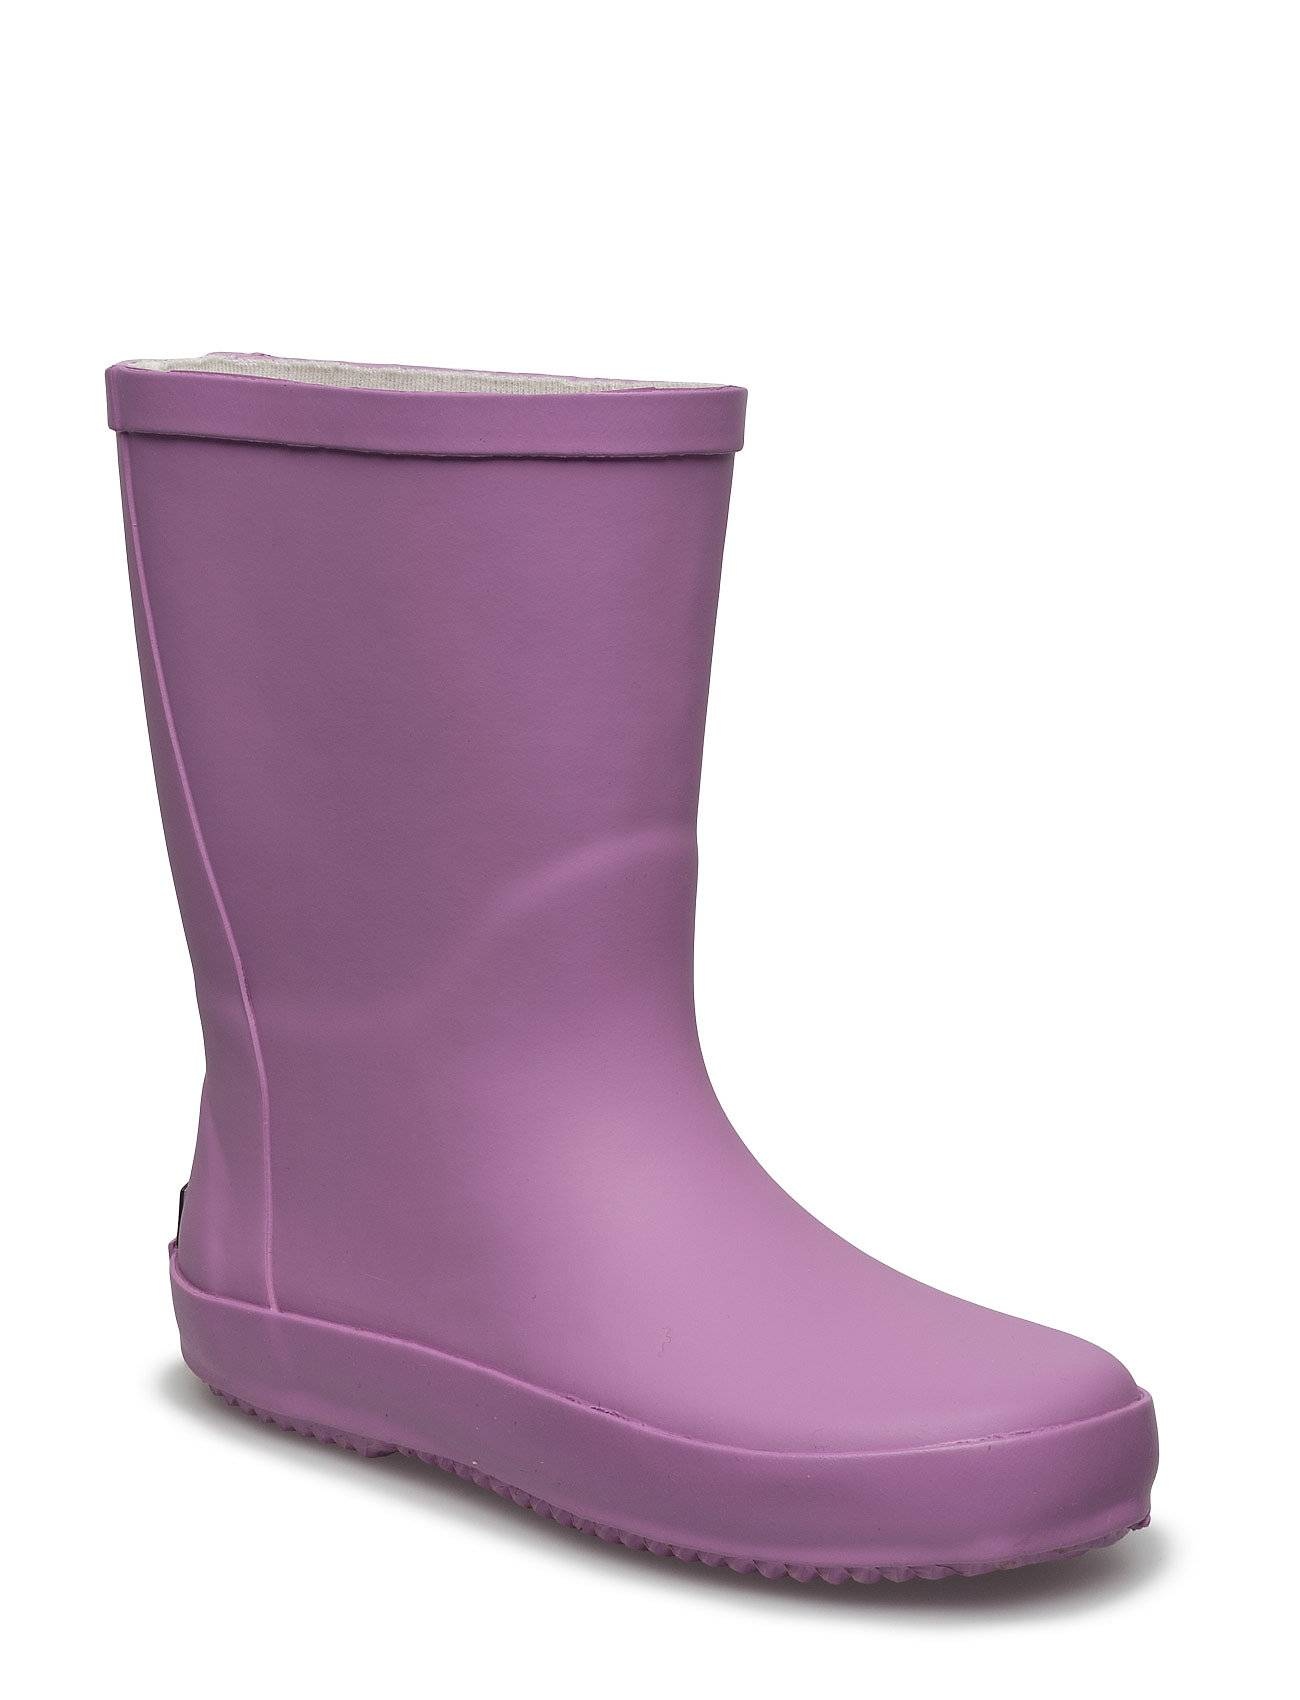 Ticket to Heaven Rubber Boots